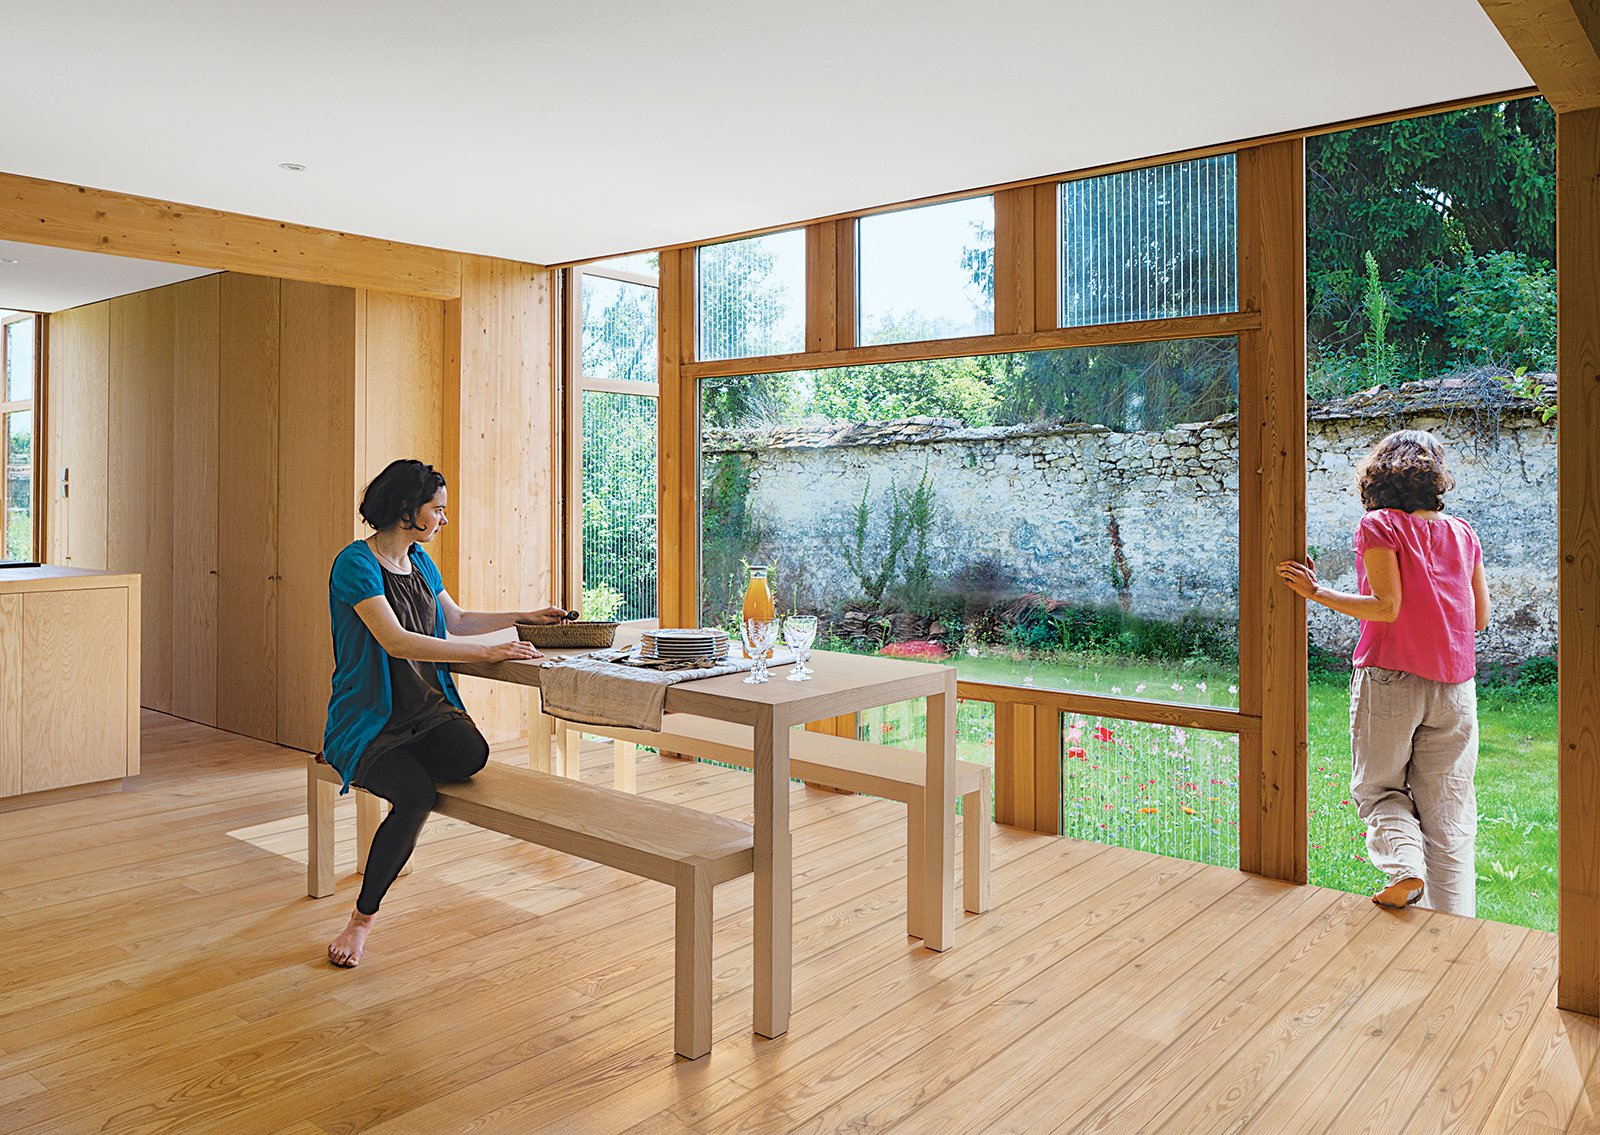 Glass doors printed with a serigraphy technique (above) are on two sides of the house. Jacquot sits at a dining table and benches designed by Arba and built by Menuiserie Ressy.